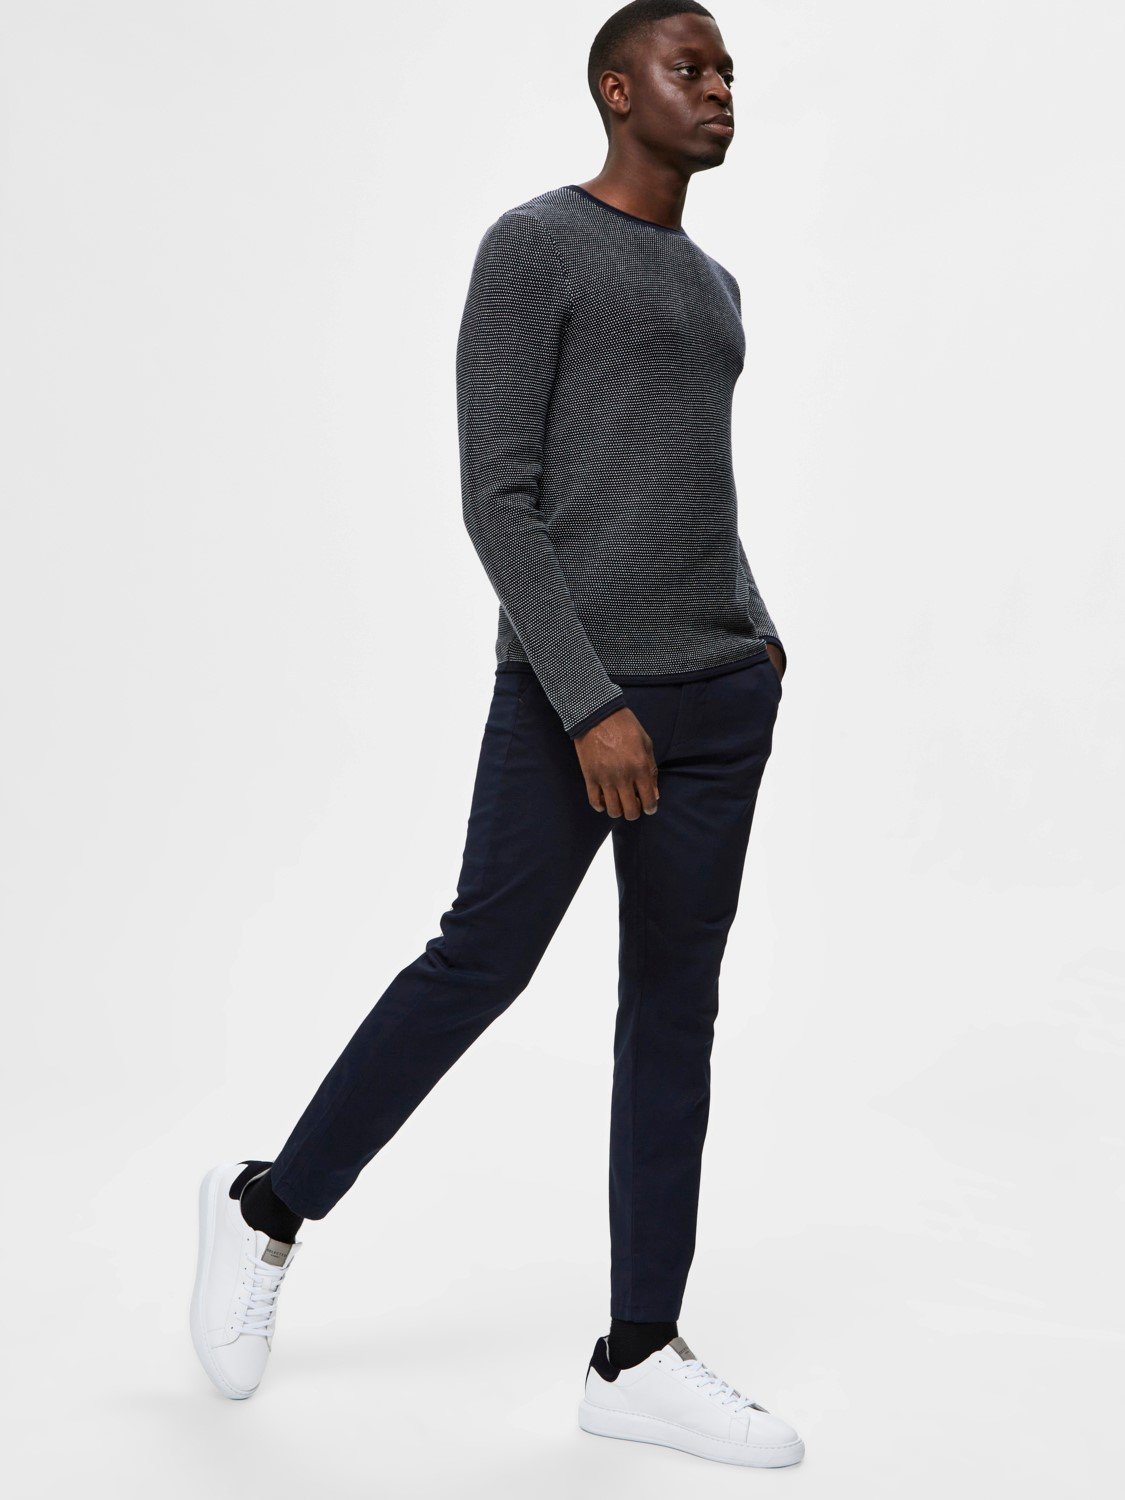 Selected Chino´s flex pants dark sapphire | Gate36 Hobro